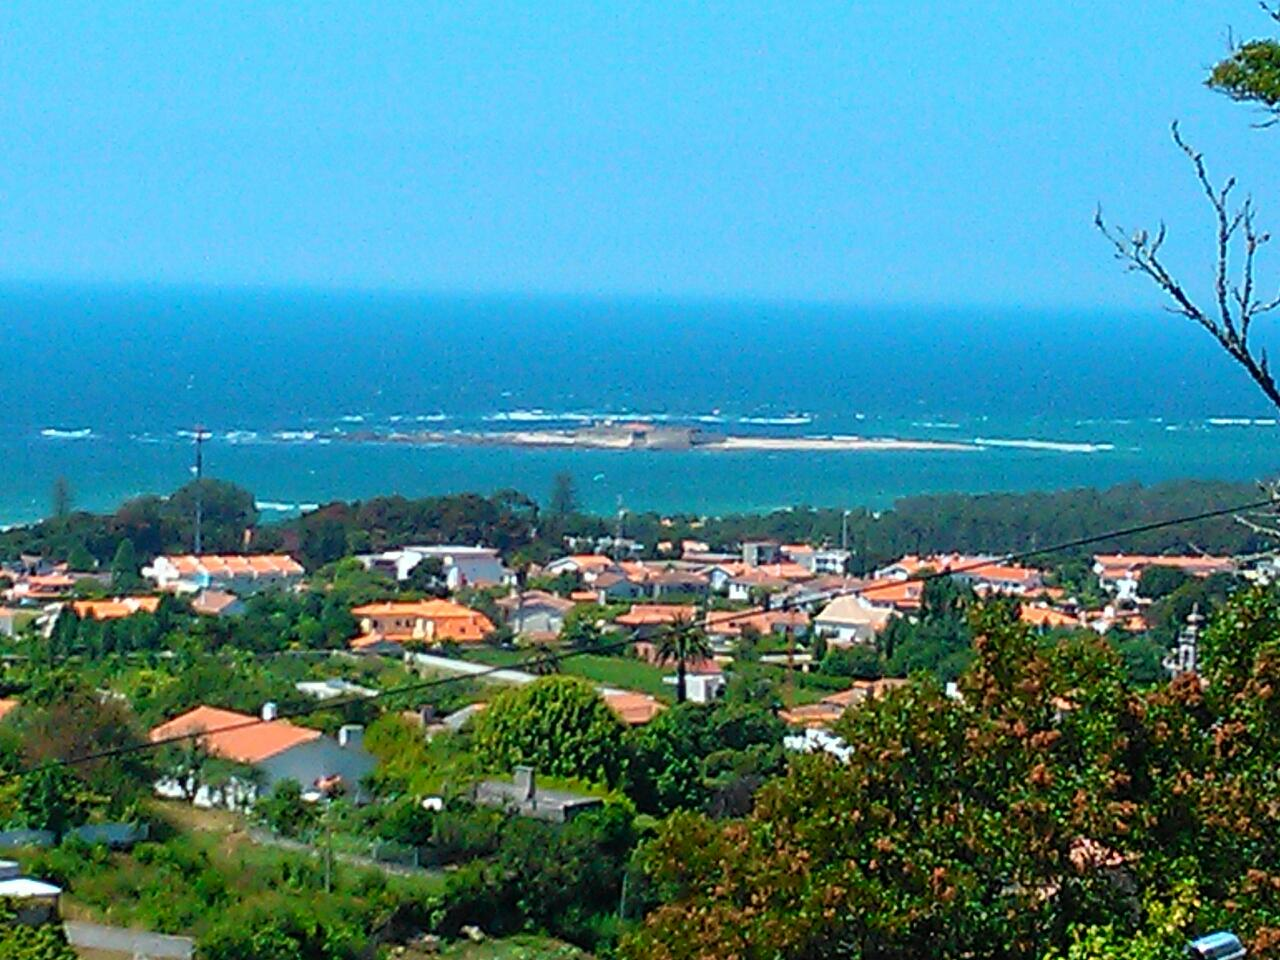 Holiday Rentals & Accommodation - Beach Houses - Portugal - Viana do Castelo - Costa Verde - Caminha - Moledo